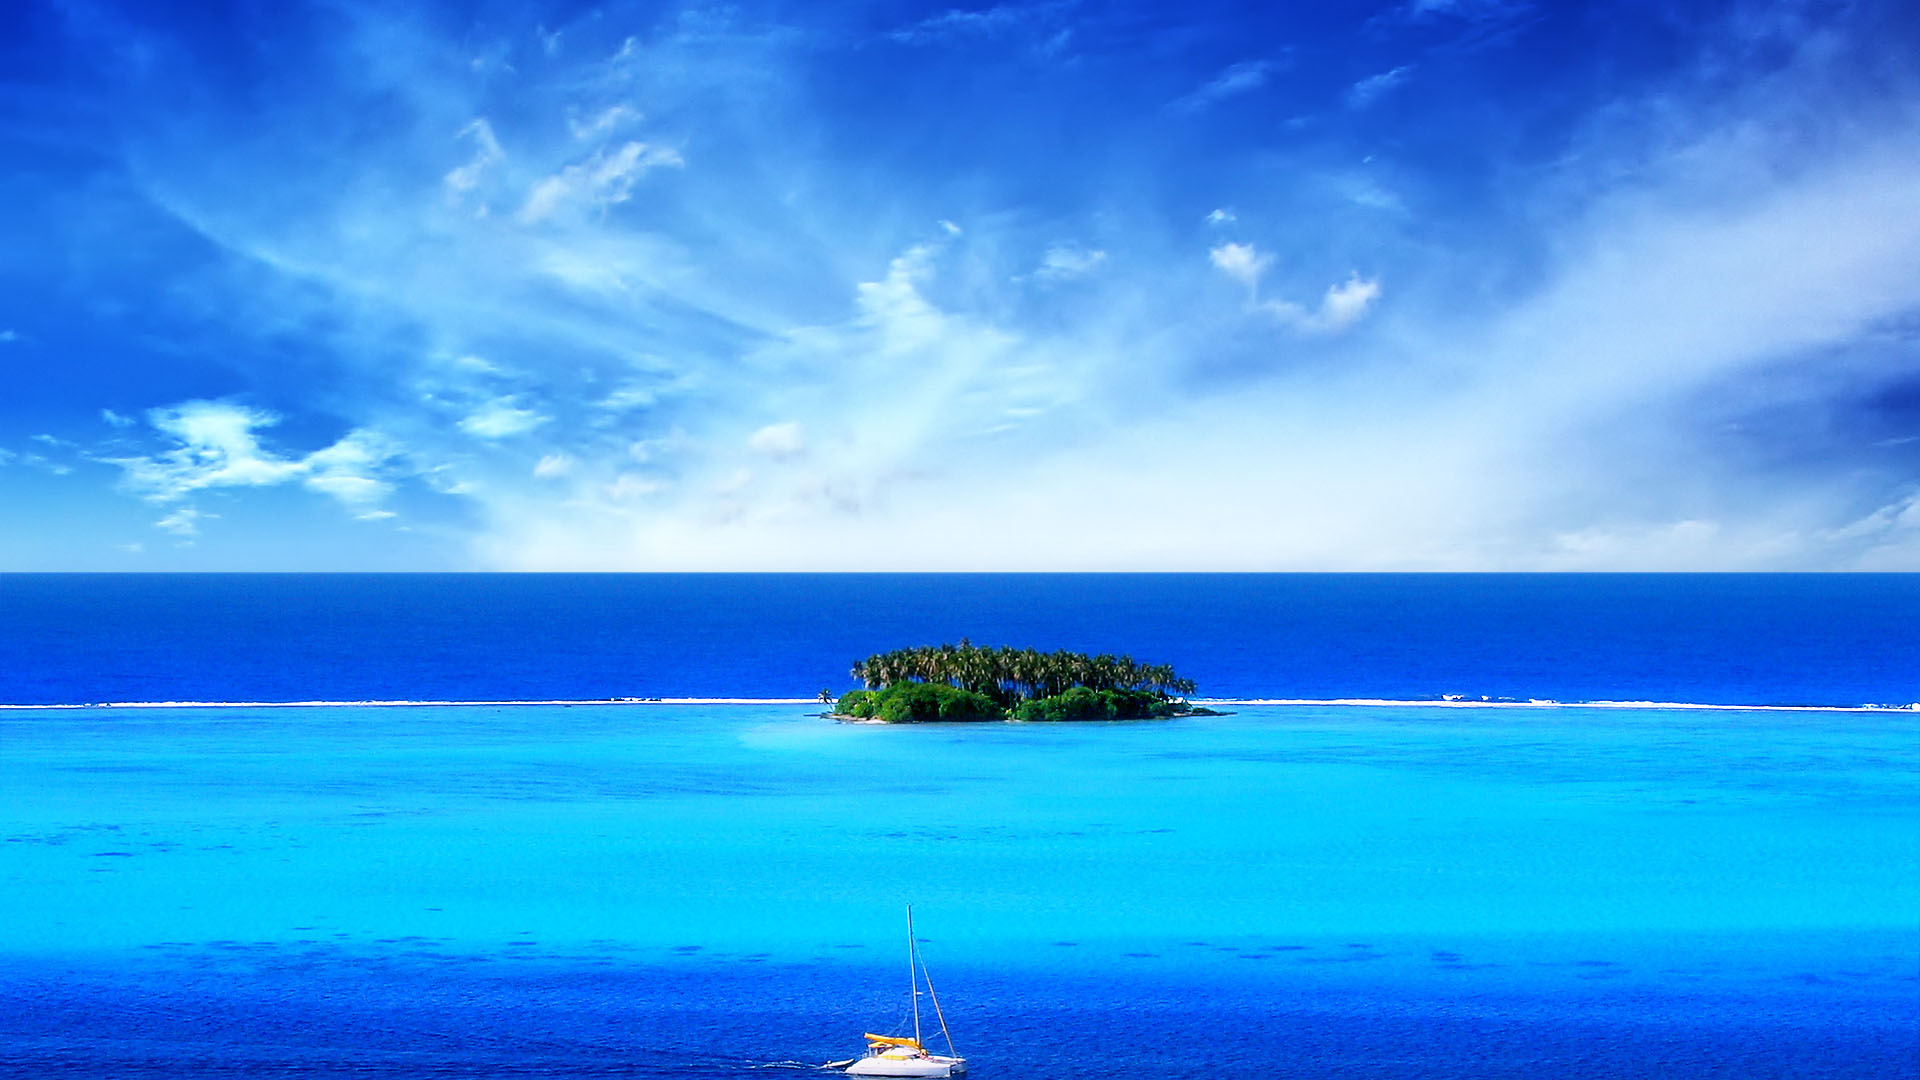 Gallery For > Tropical Island Wallpaper With Fish